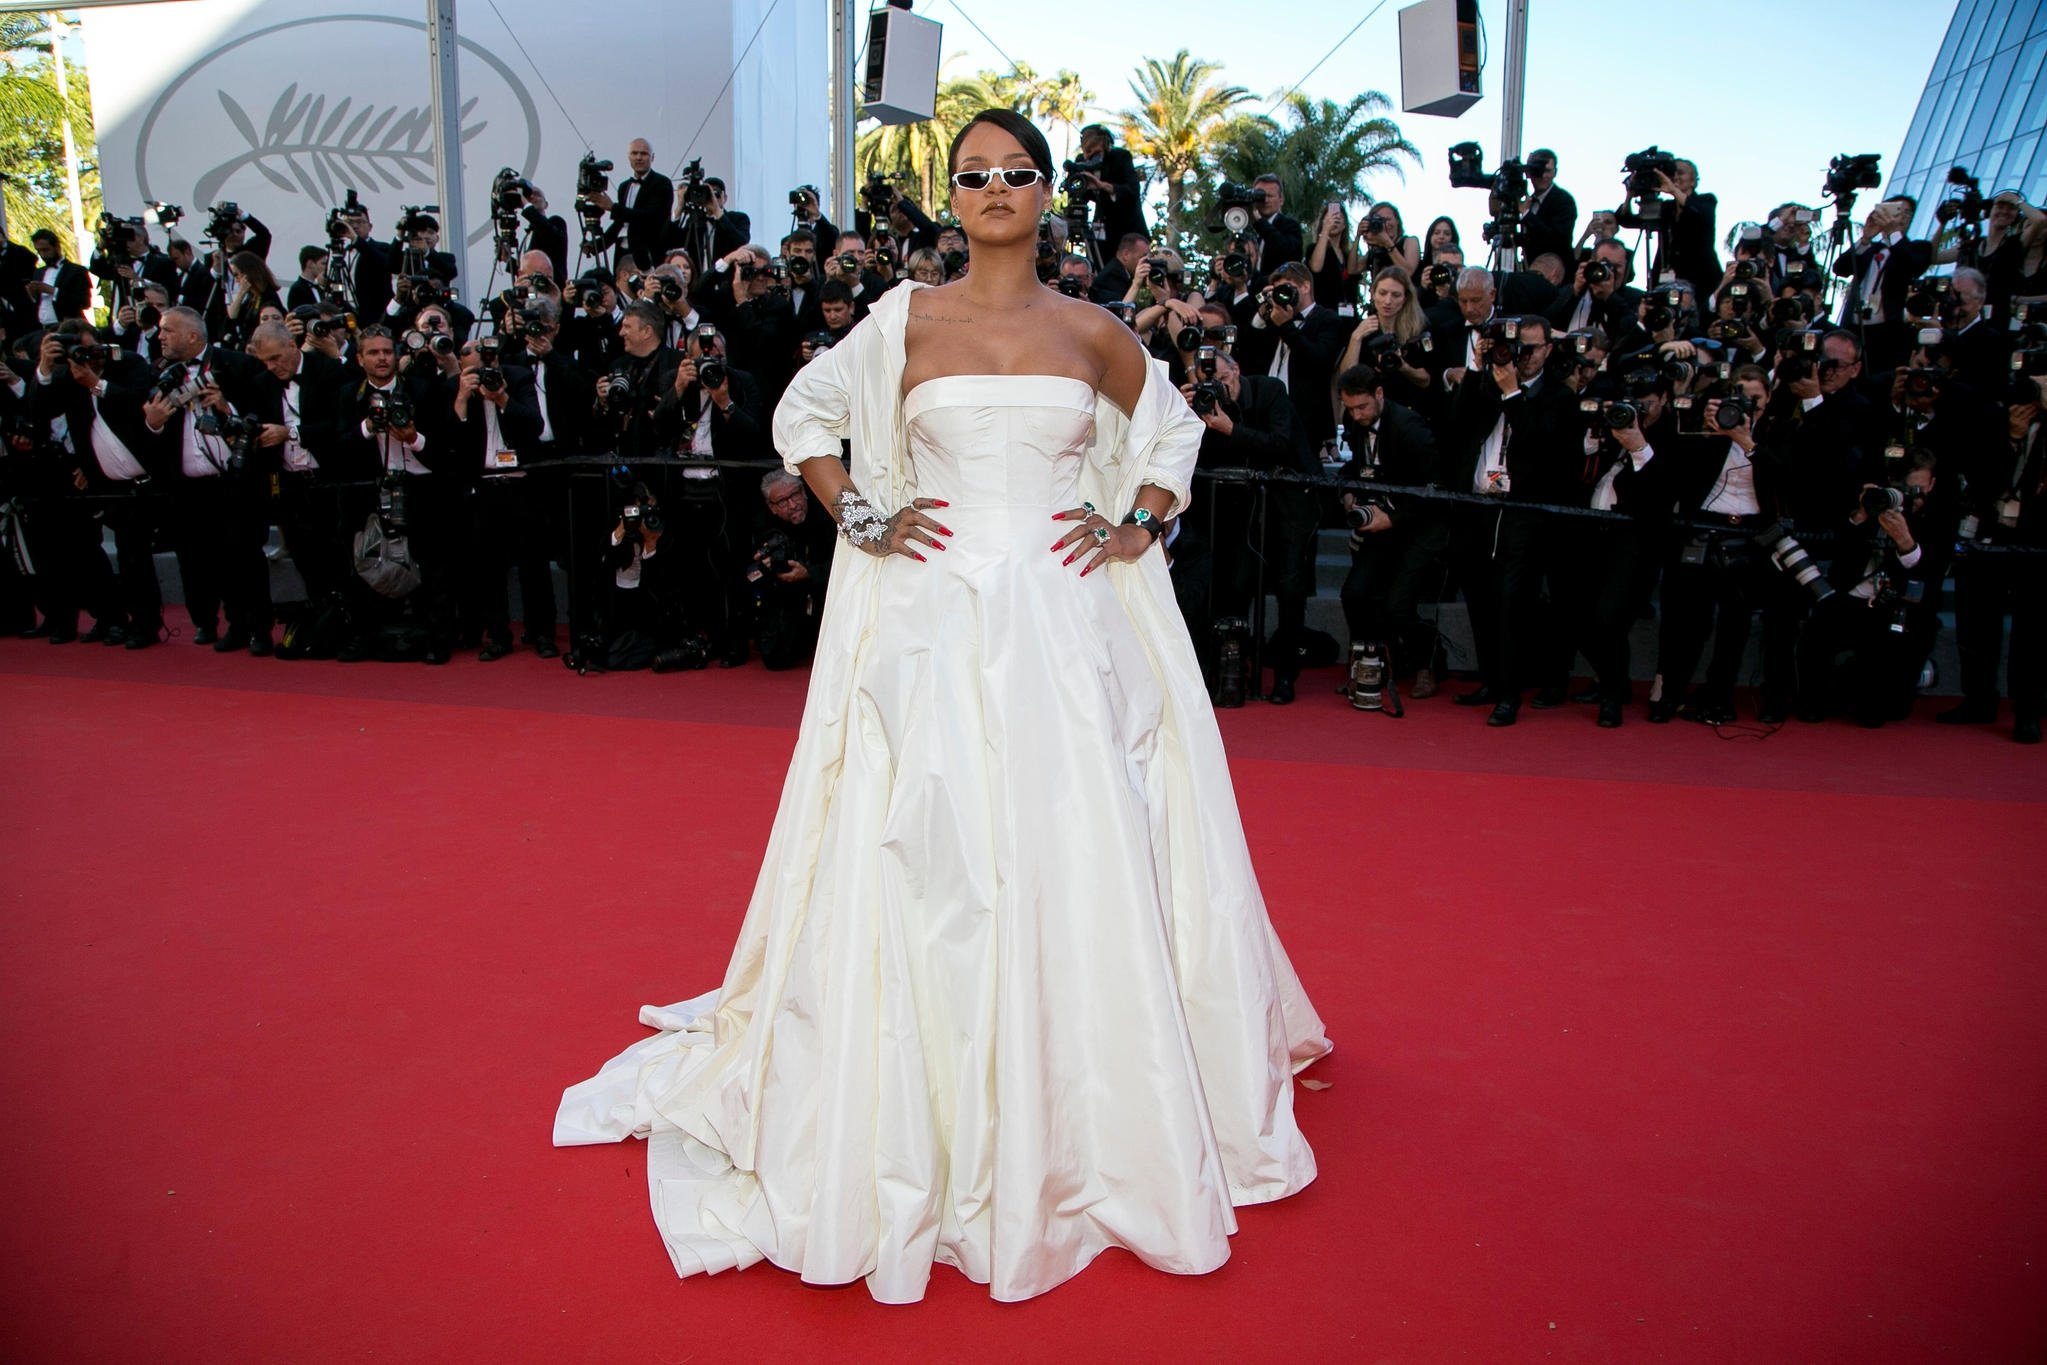 Elite Singer Rihanna Red Carpet Pics - Elite Singer Rihanna Red Carpet Pics